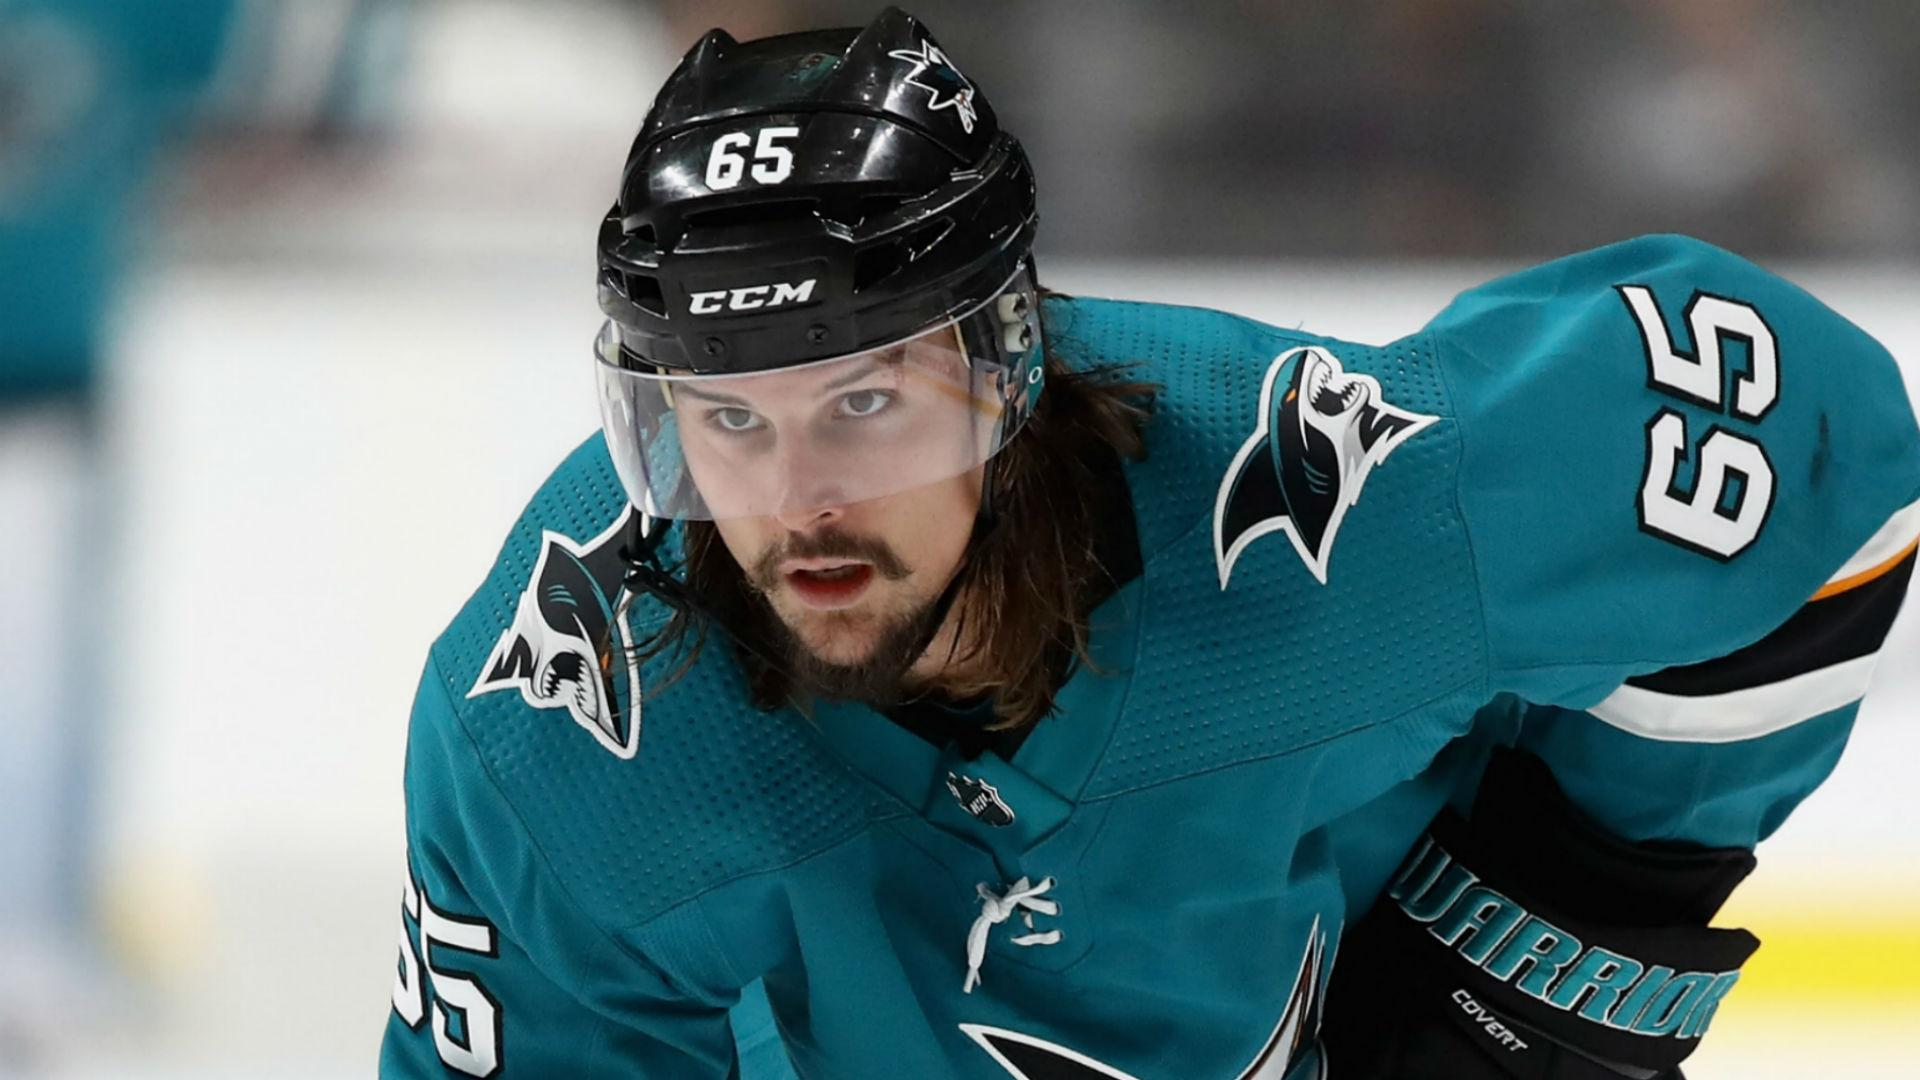 Sharks' Erik Karlsson gets solo lap and standing ovation in return